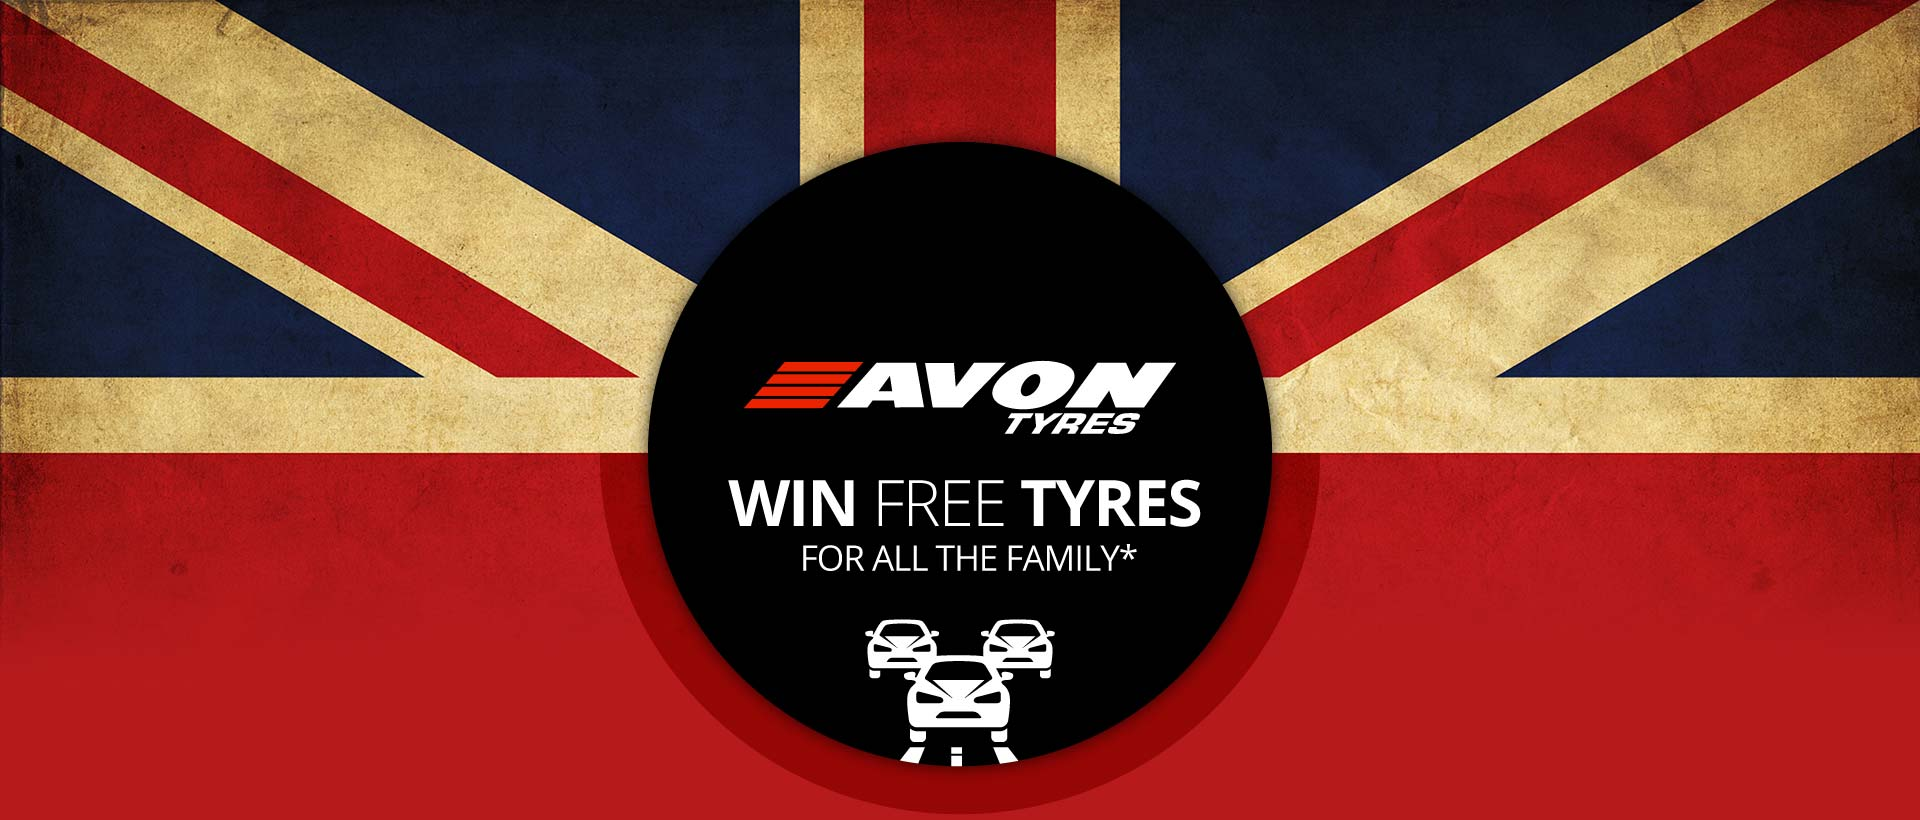 Win Free tyres for all the family when you order Avon tyres